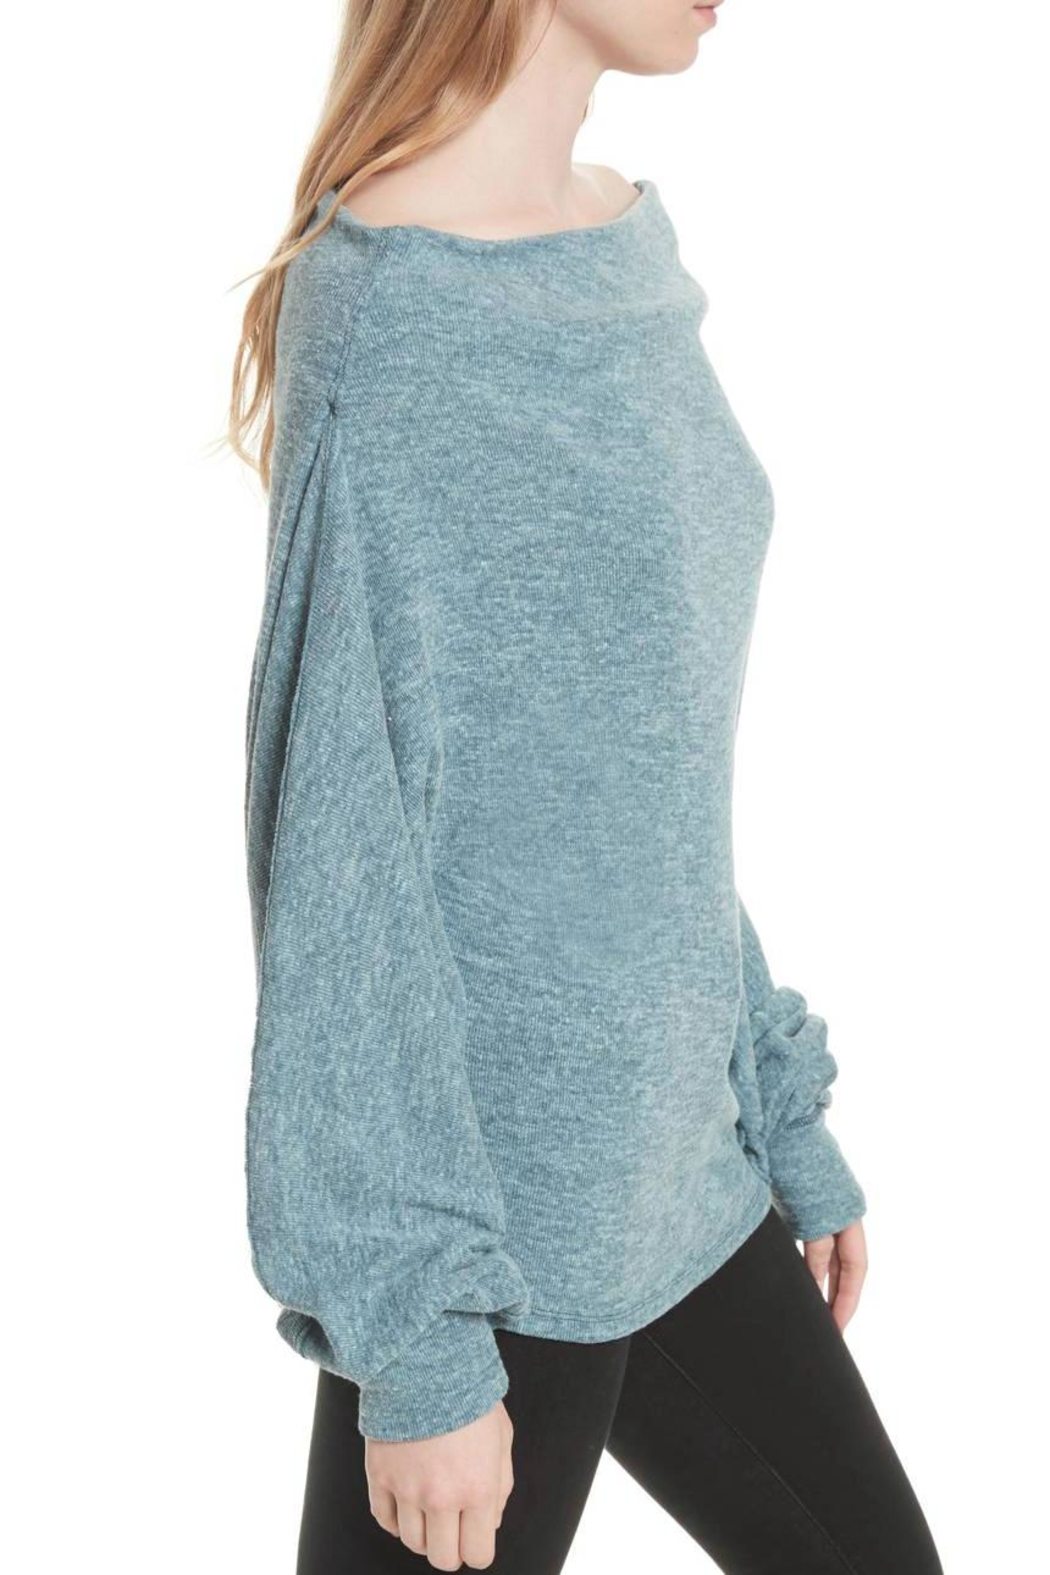 Free People Skyline Thermal Top - Side Cropped Image